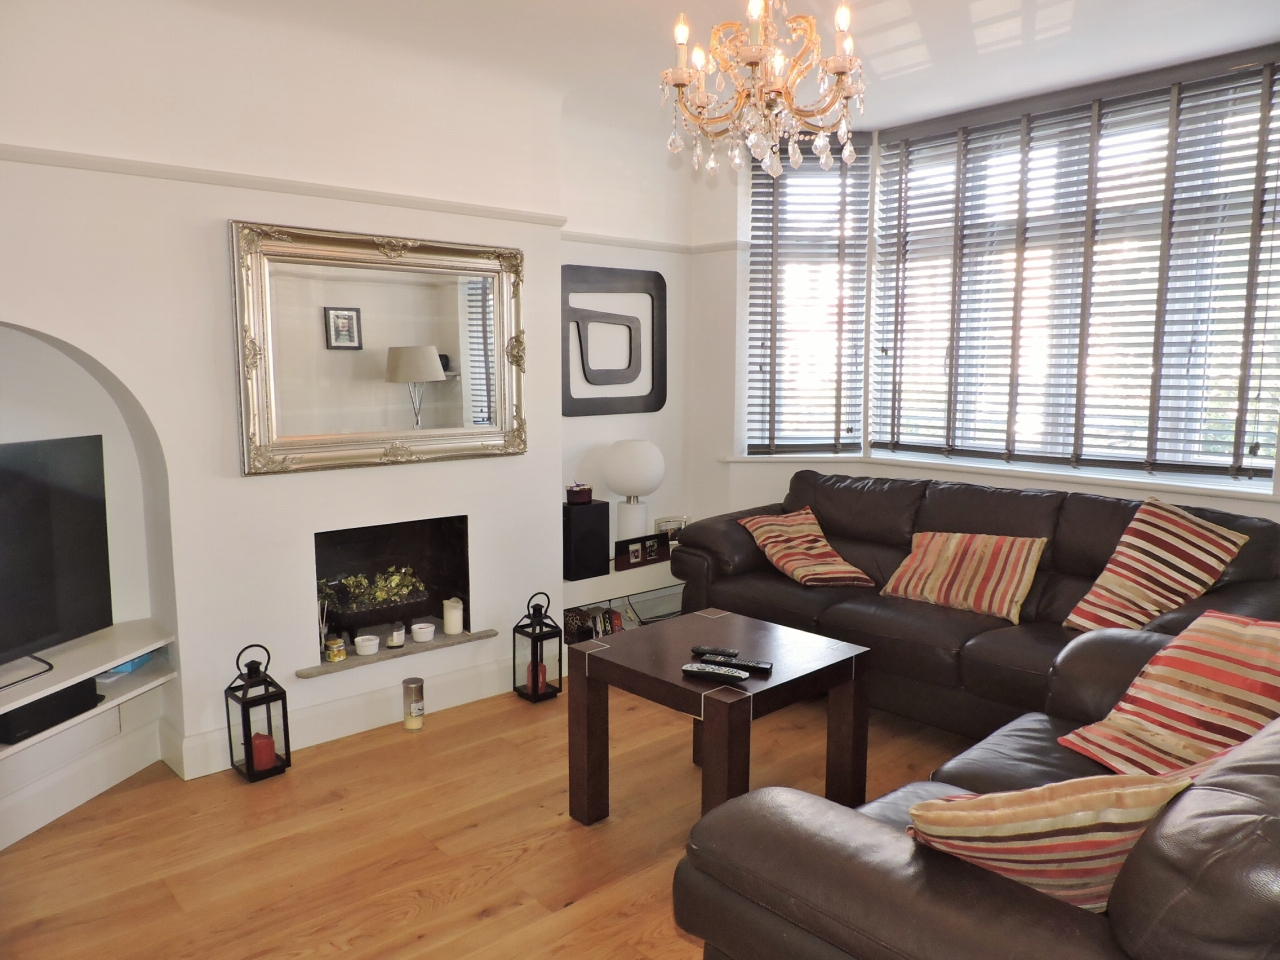 3 bedroom semi-detached house Sold in New Malden - Photograph 3